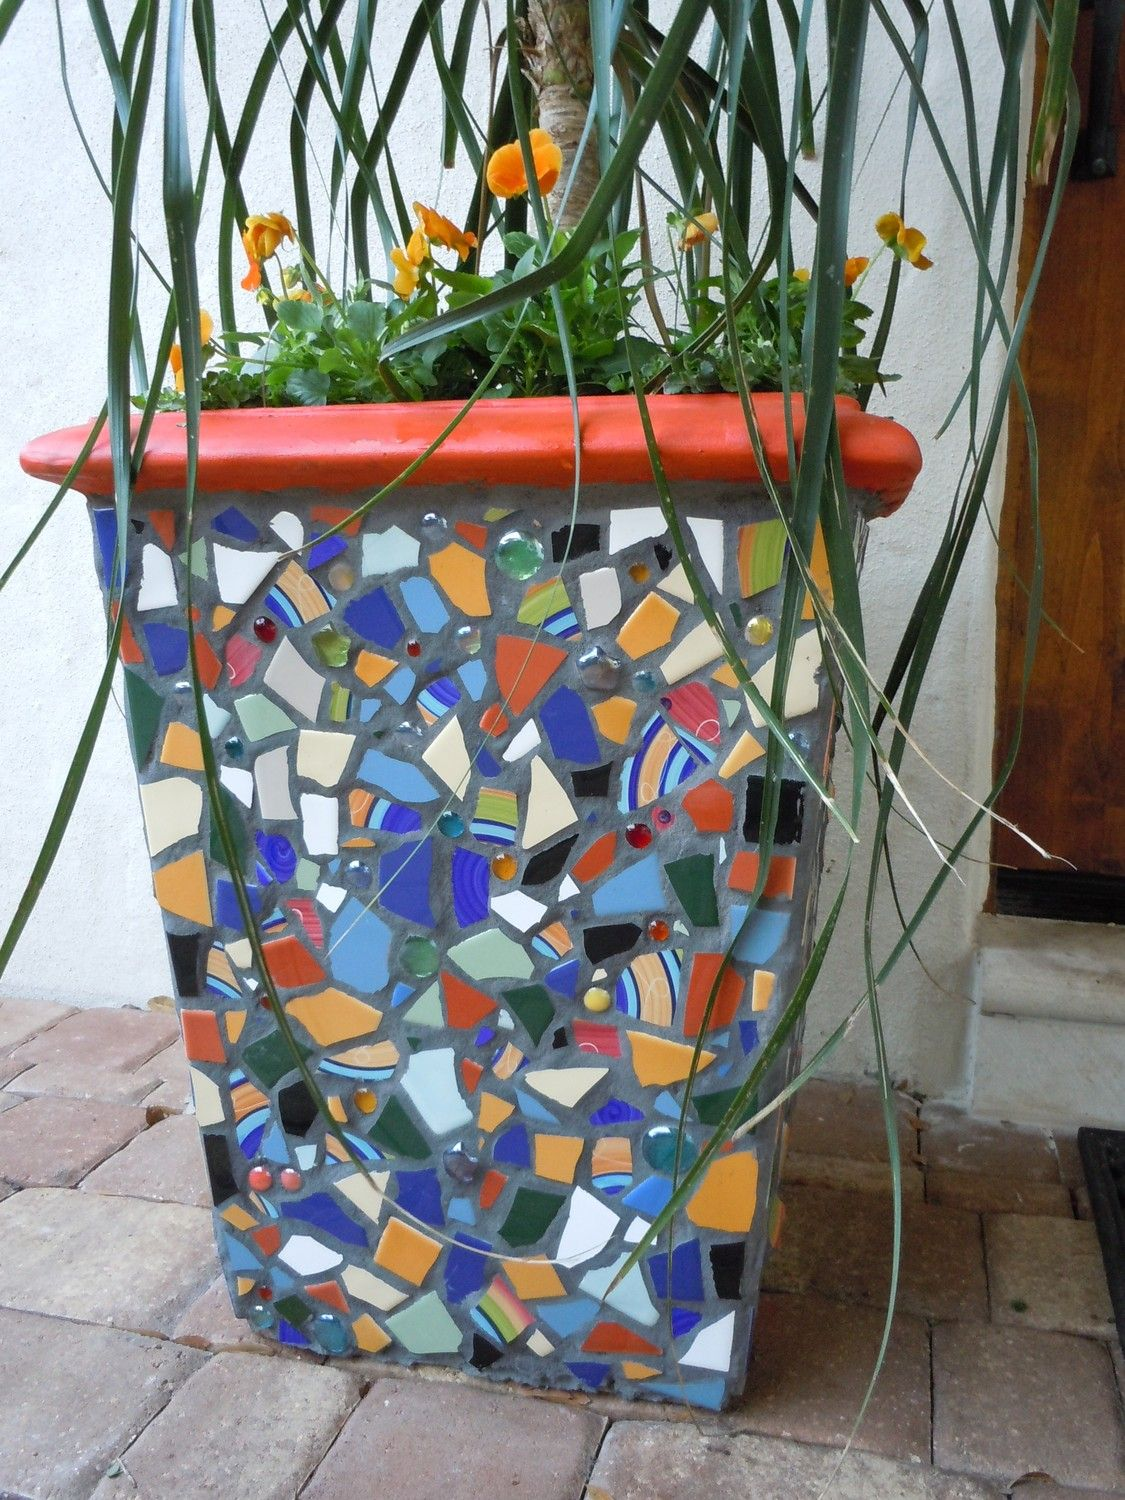 Goliath Huge Large Mosaic Flower Pot Planter For Home